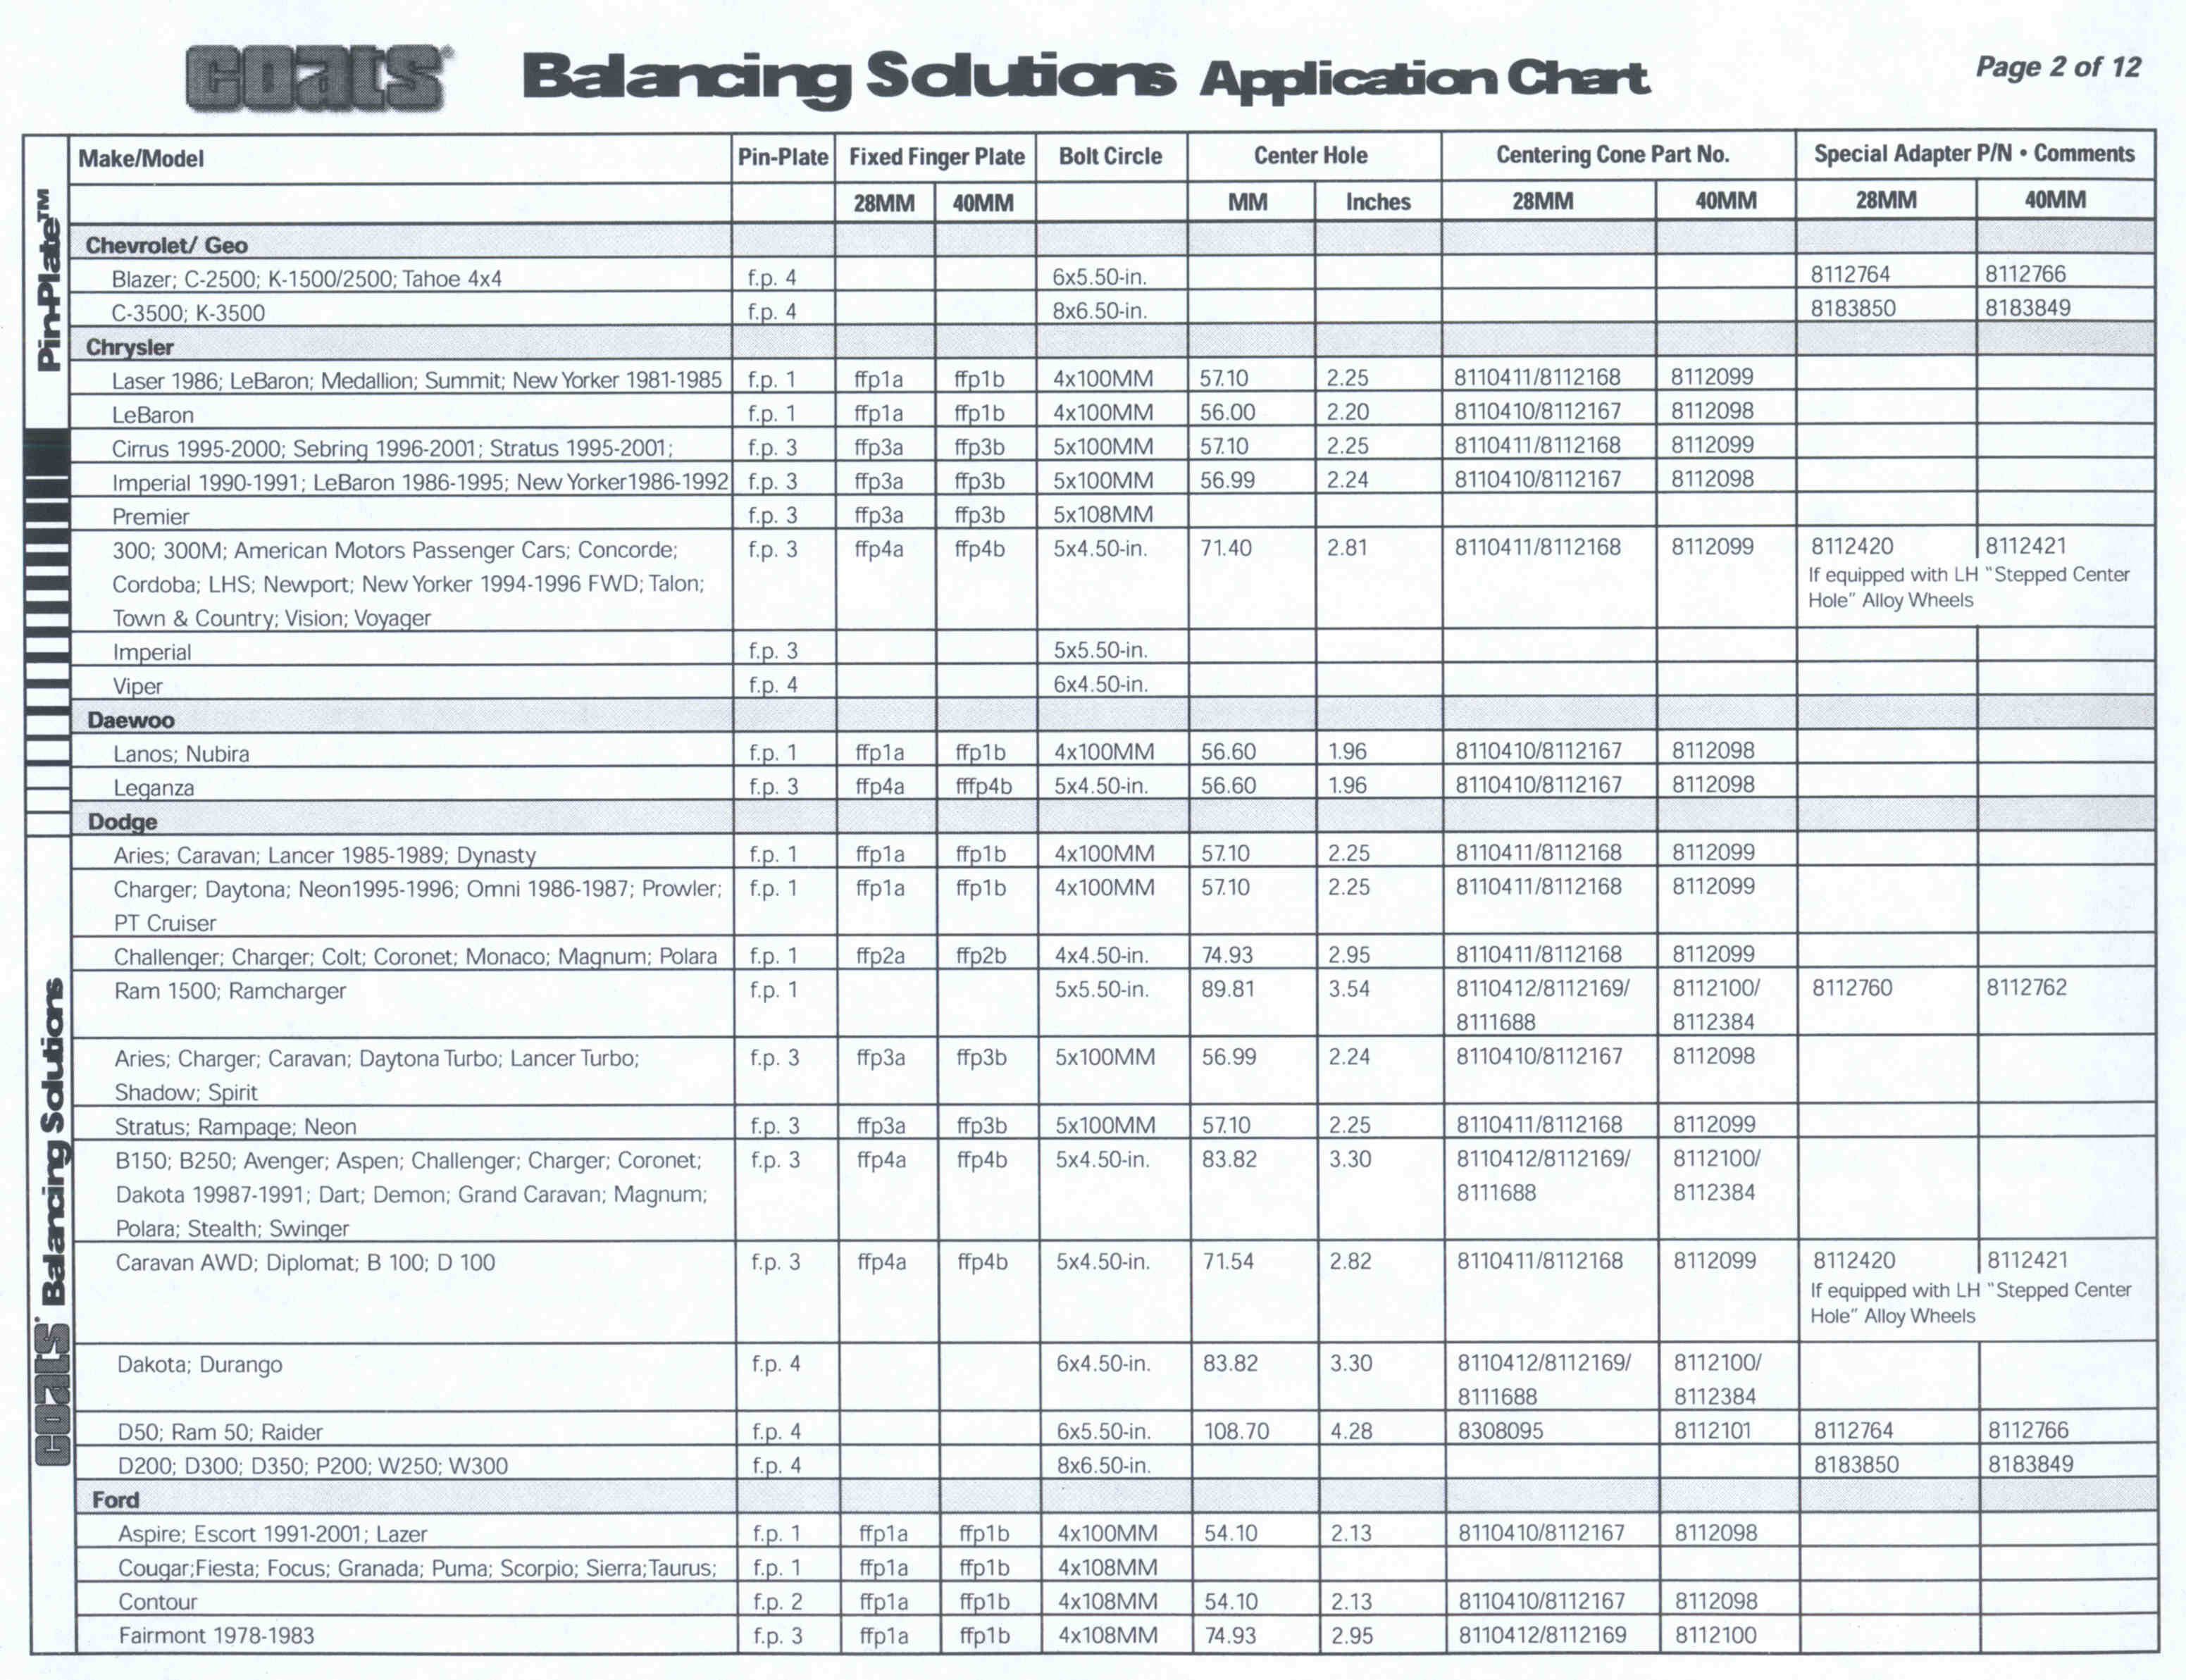 Balancing Solutions Chart Pages 1-8